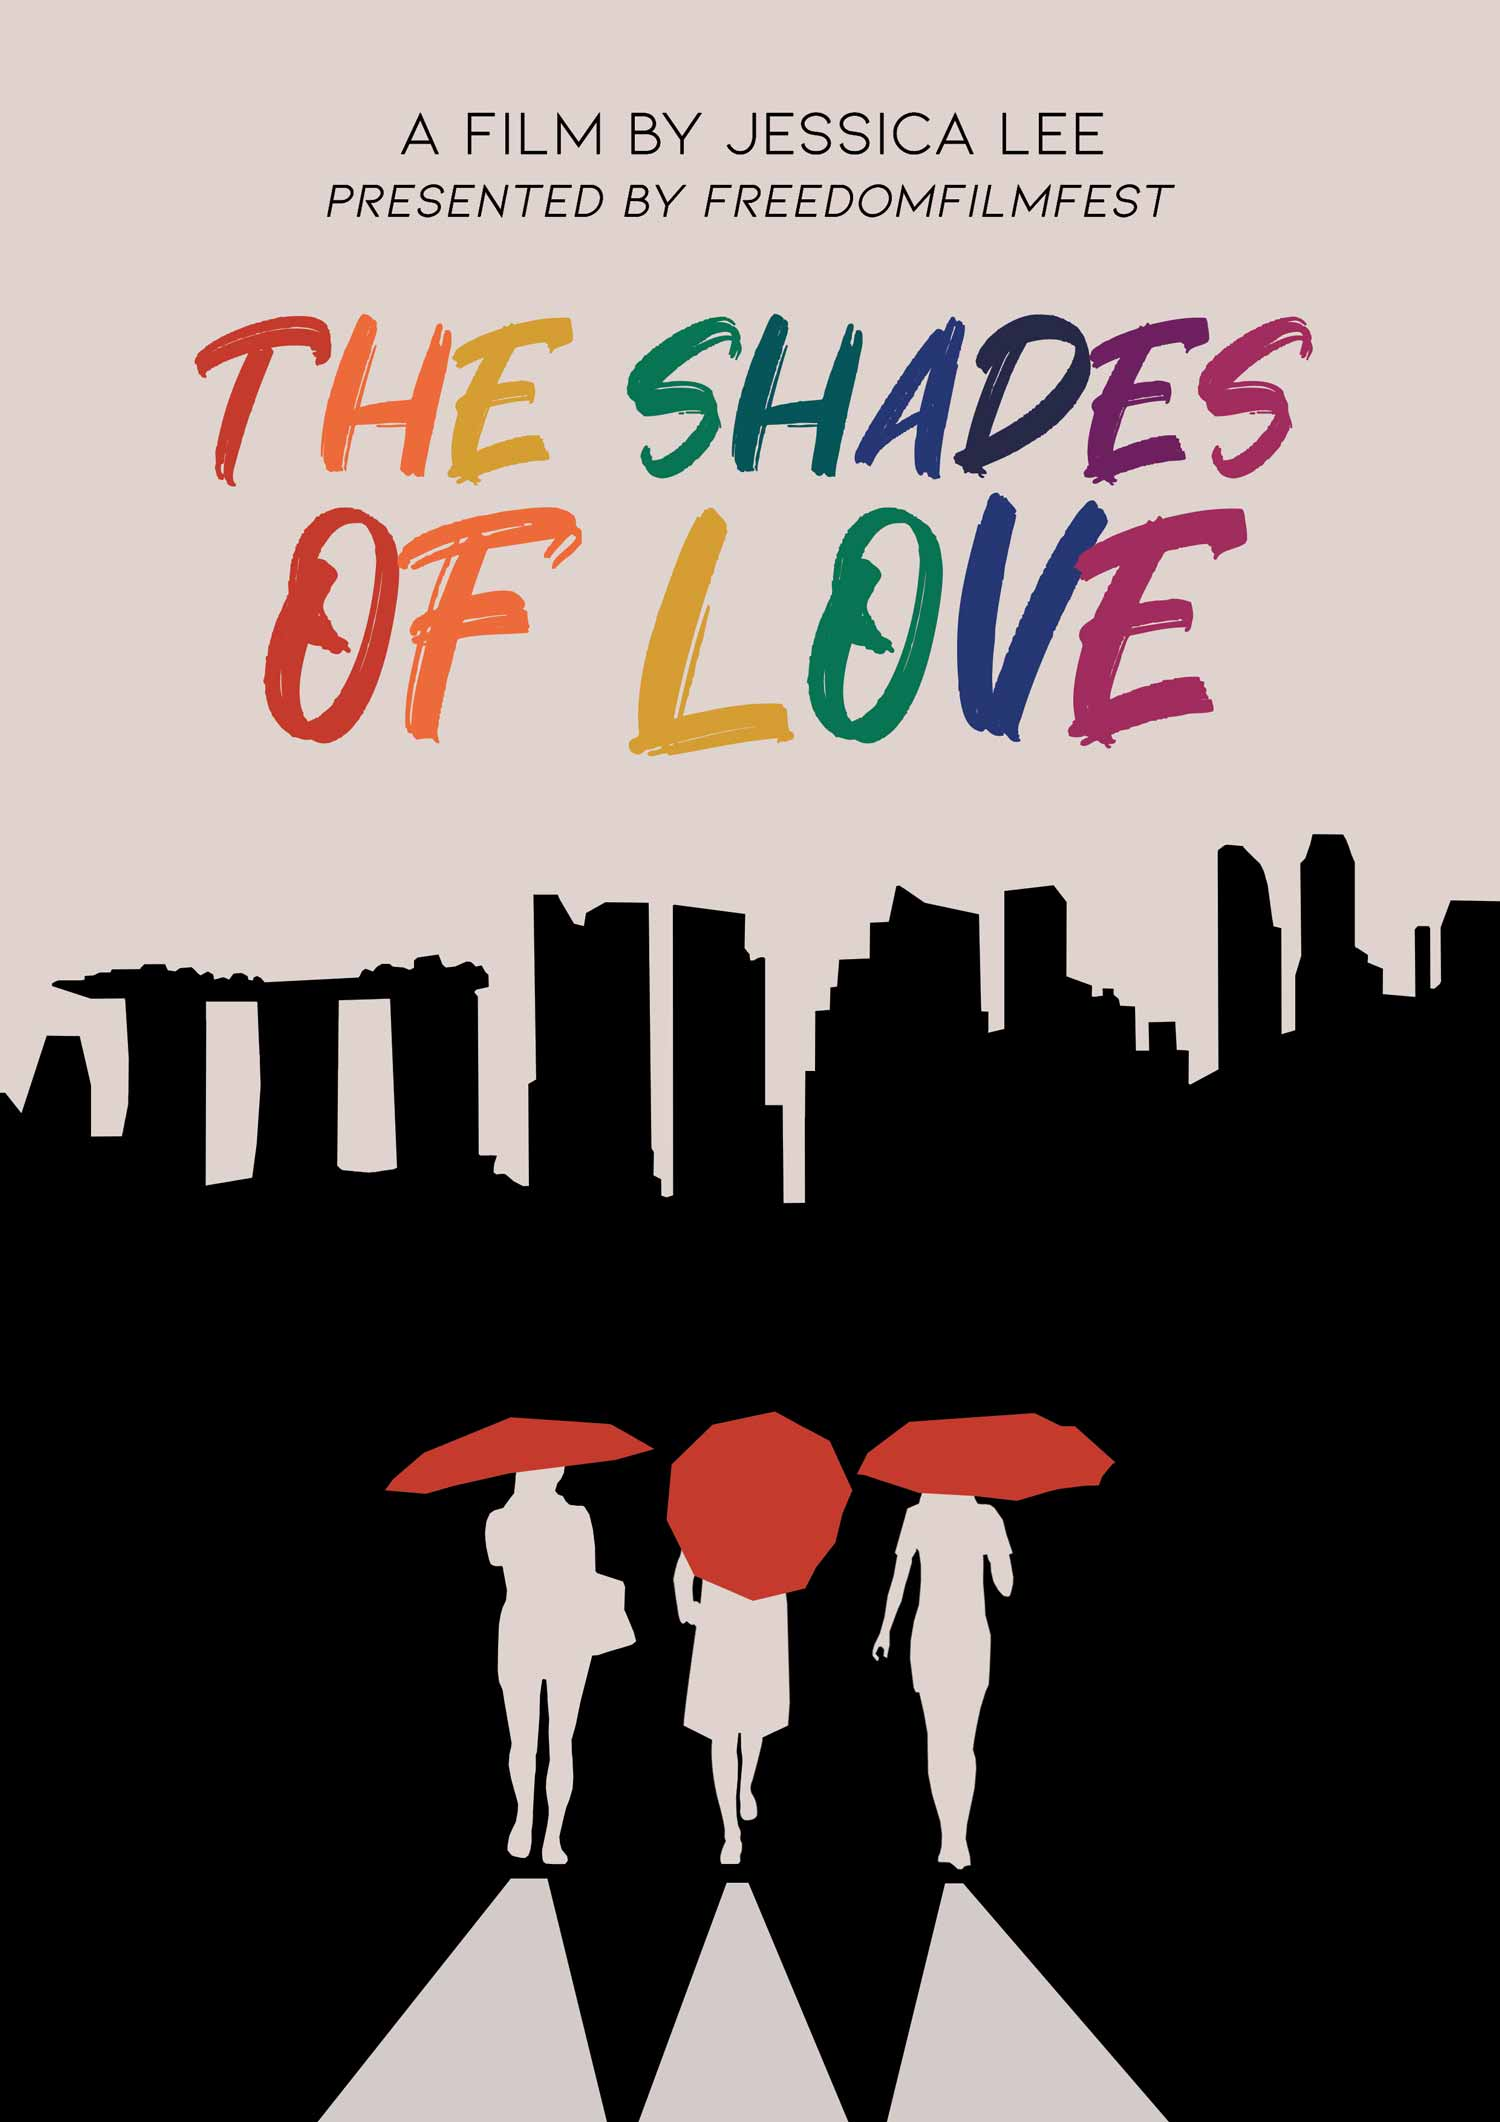 The Shades of Love by Jessica Lee (FreedomFilmFest 2020)